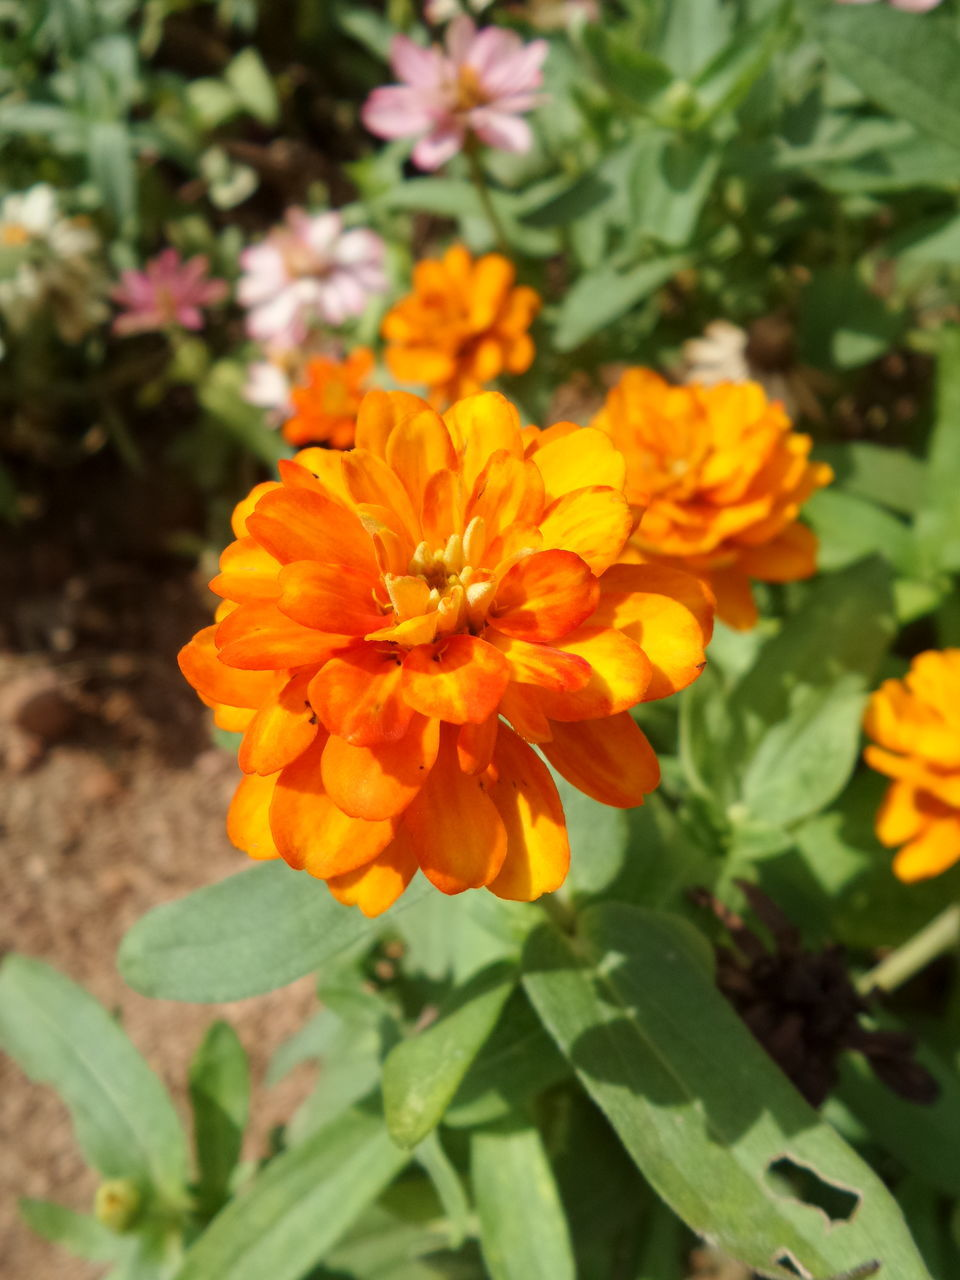 flower, petal, beauty in nature, nature, fragility, freshness, flower head, growth, plant, orange color, blooming, no people, day, outdoors, yellow, close-up, marigold